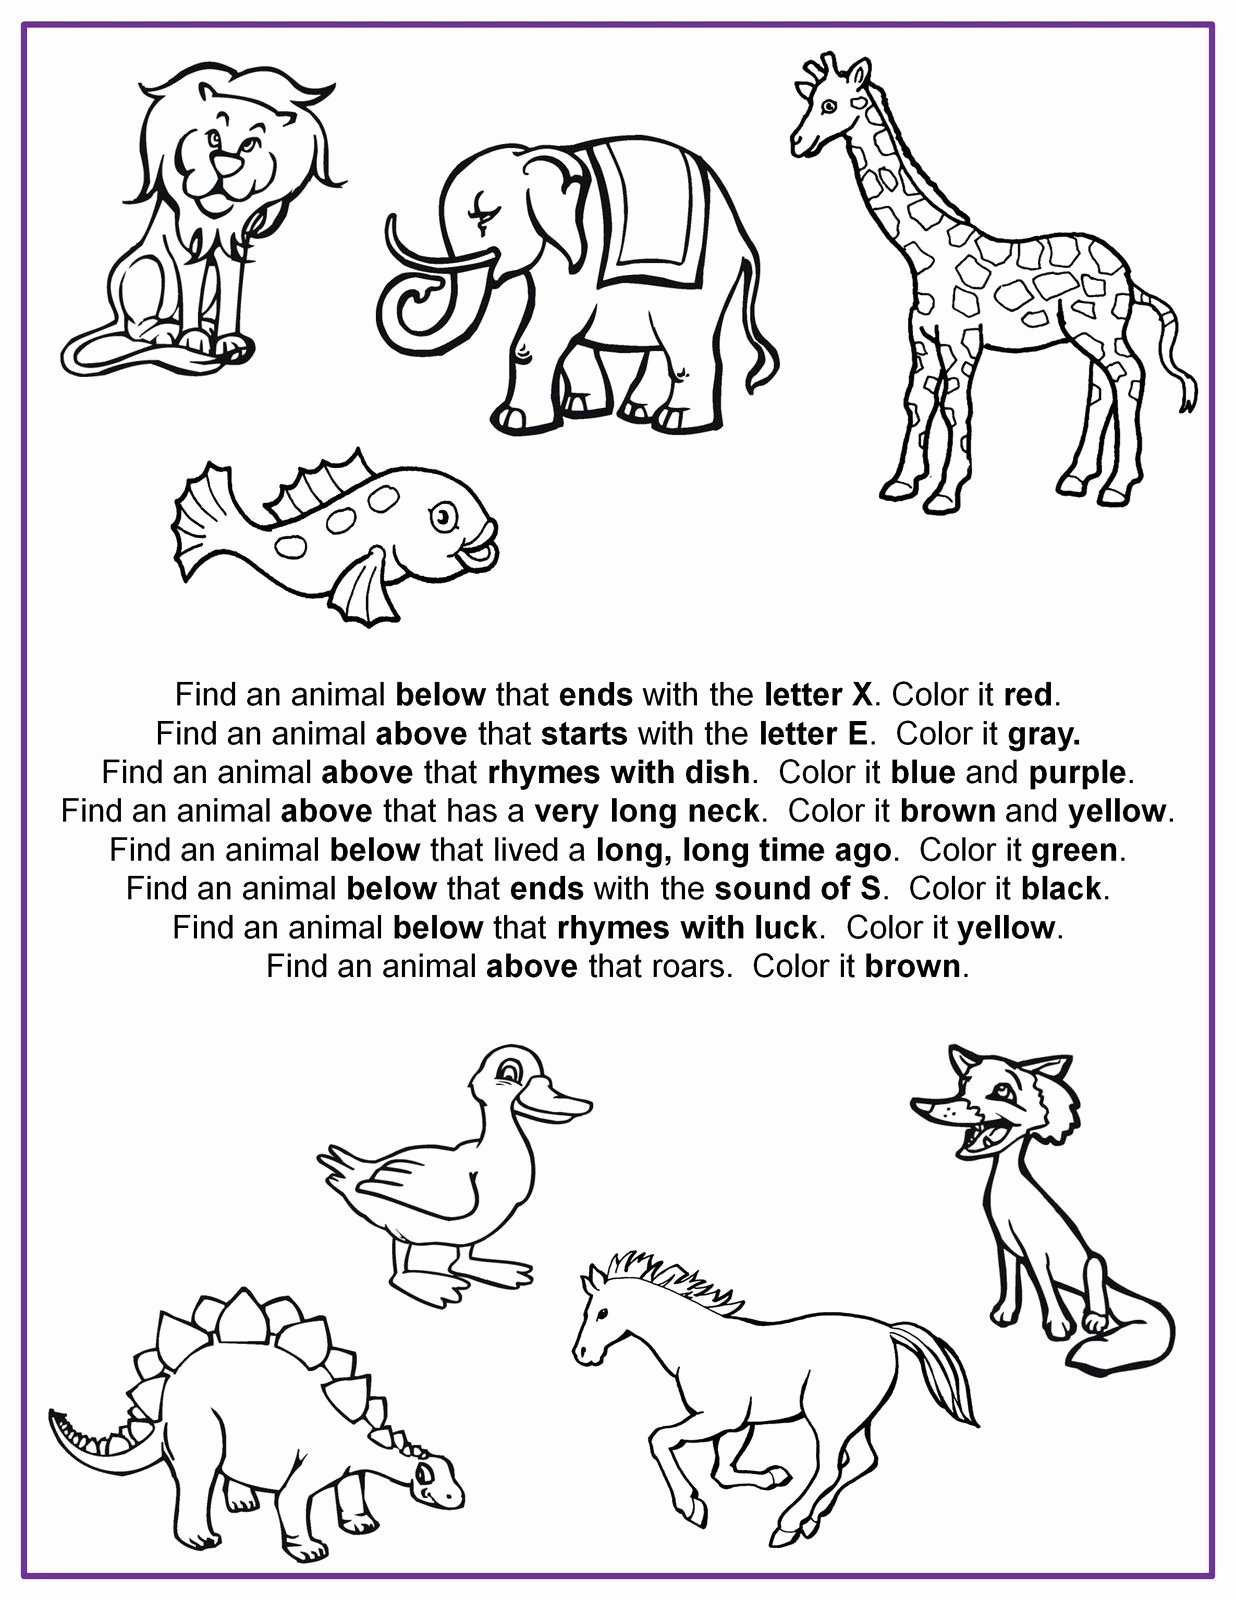 Following Directions Worksheet Kindergarten Inspirational Being Able to Follow Directions is One Of the Most